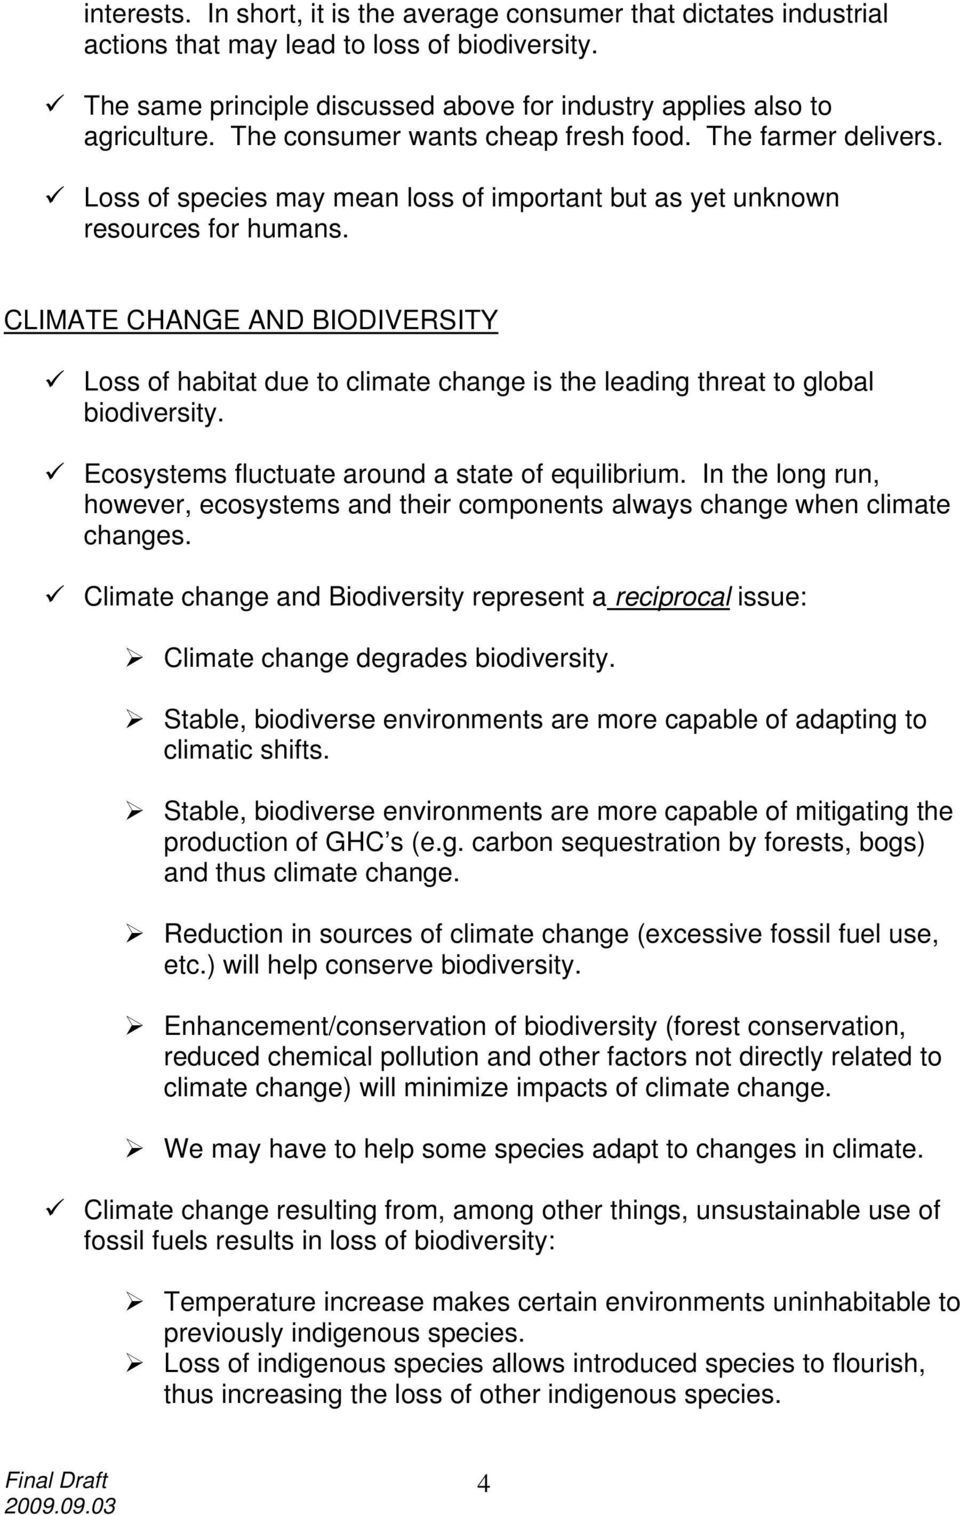 CLIMATE CHANGE AND BIODIVERSITY Loss of habitat due to climate change is the leading threat to global biodiversity. Ecosystems fluctuate around a state of equilibrium.